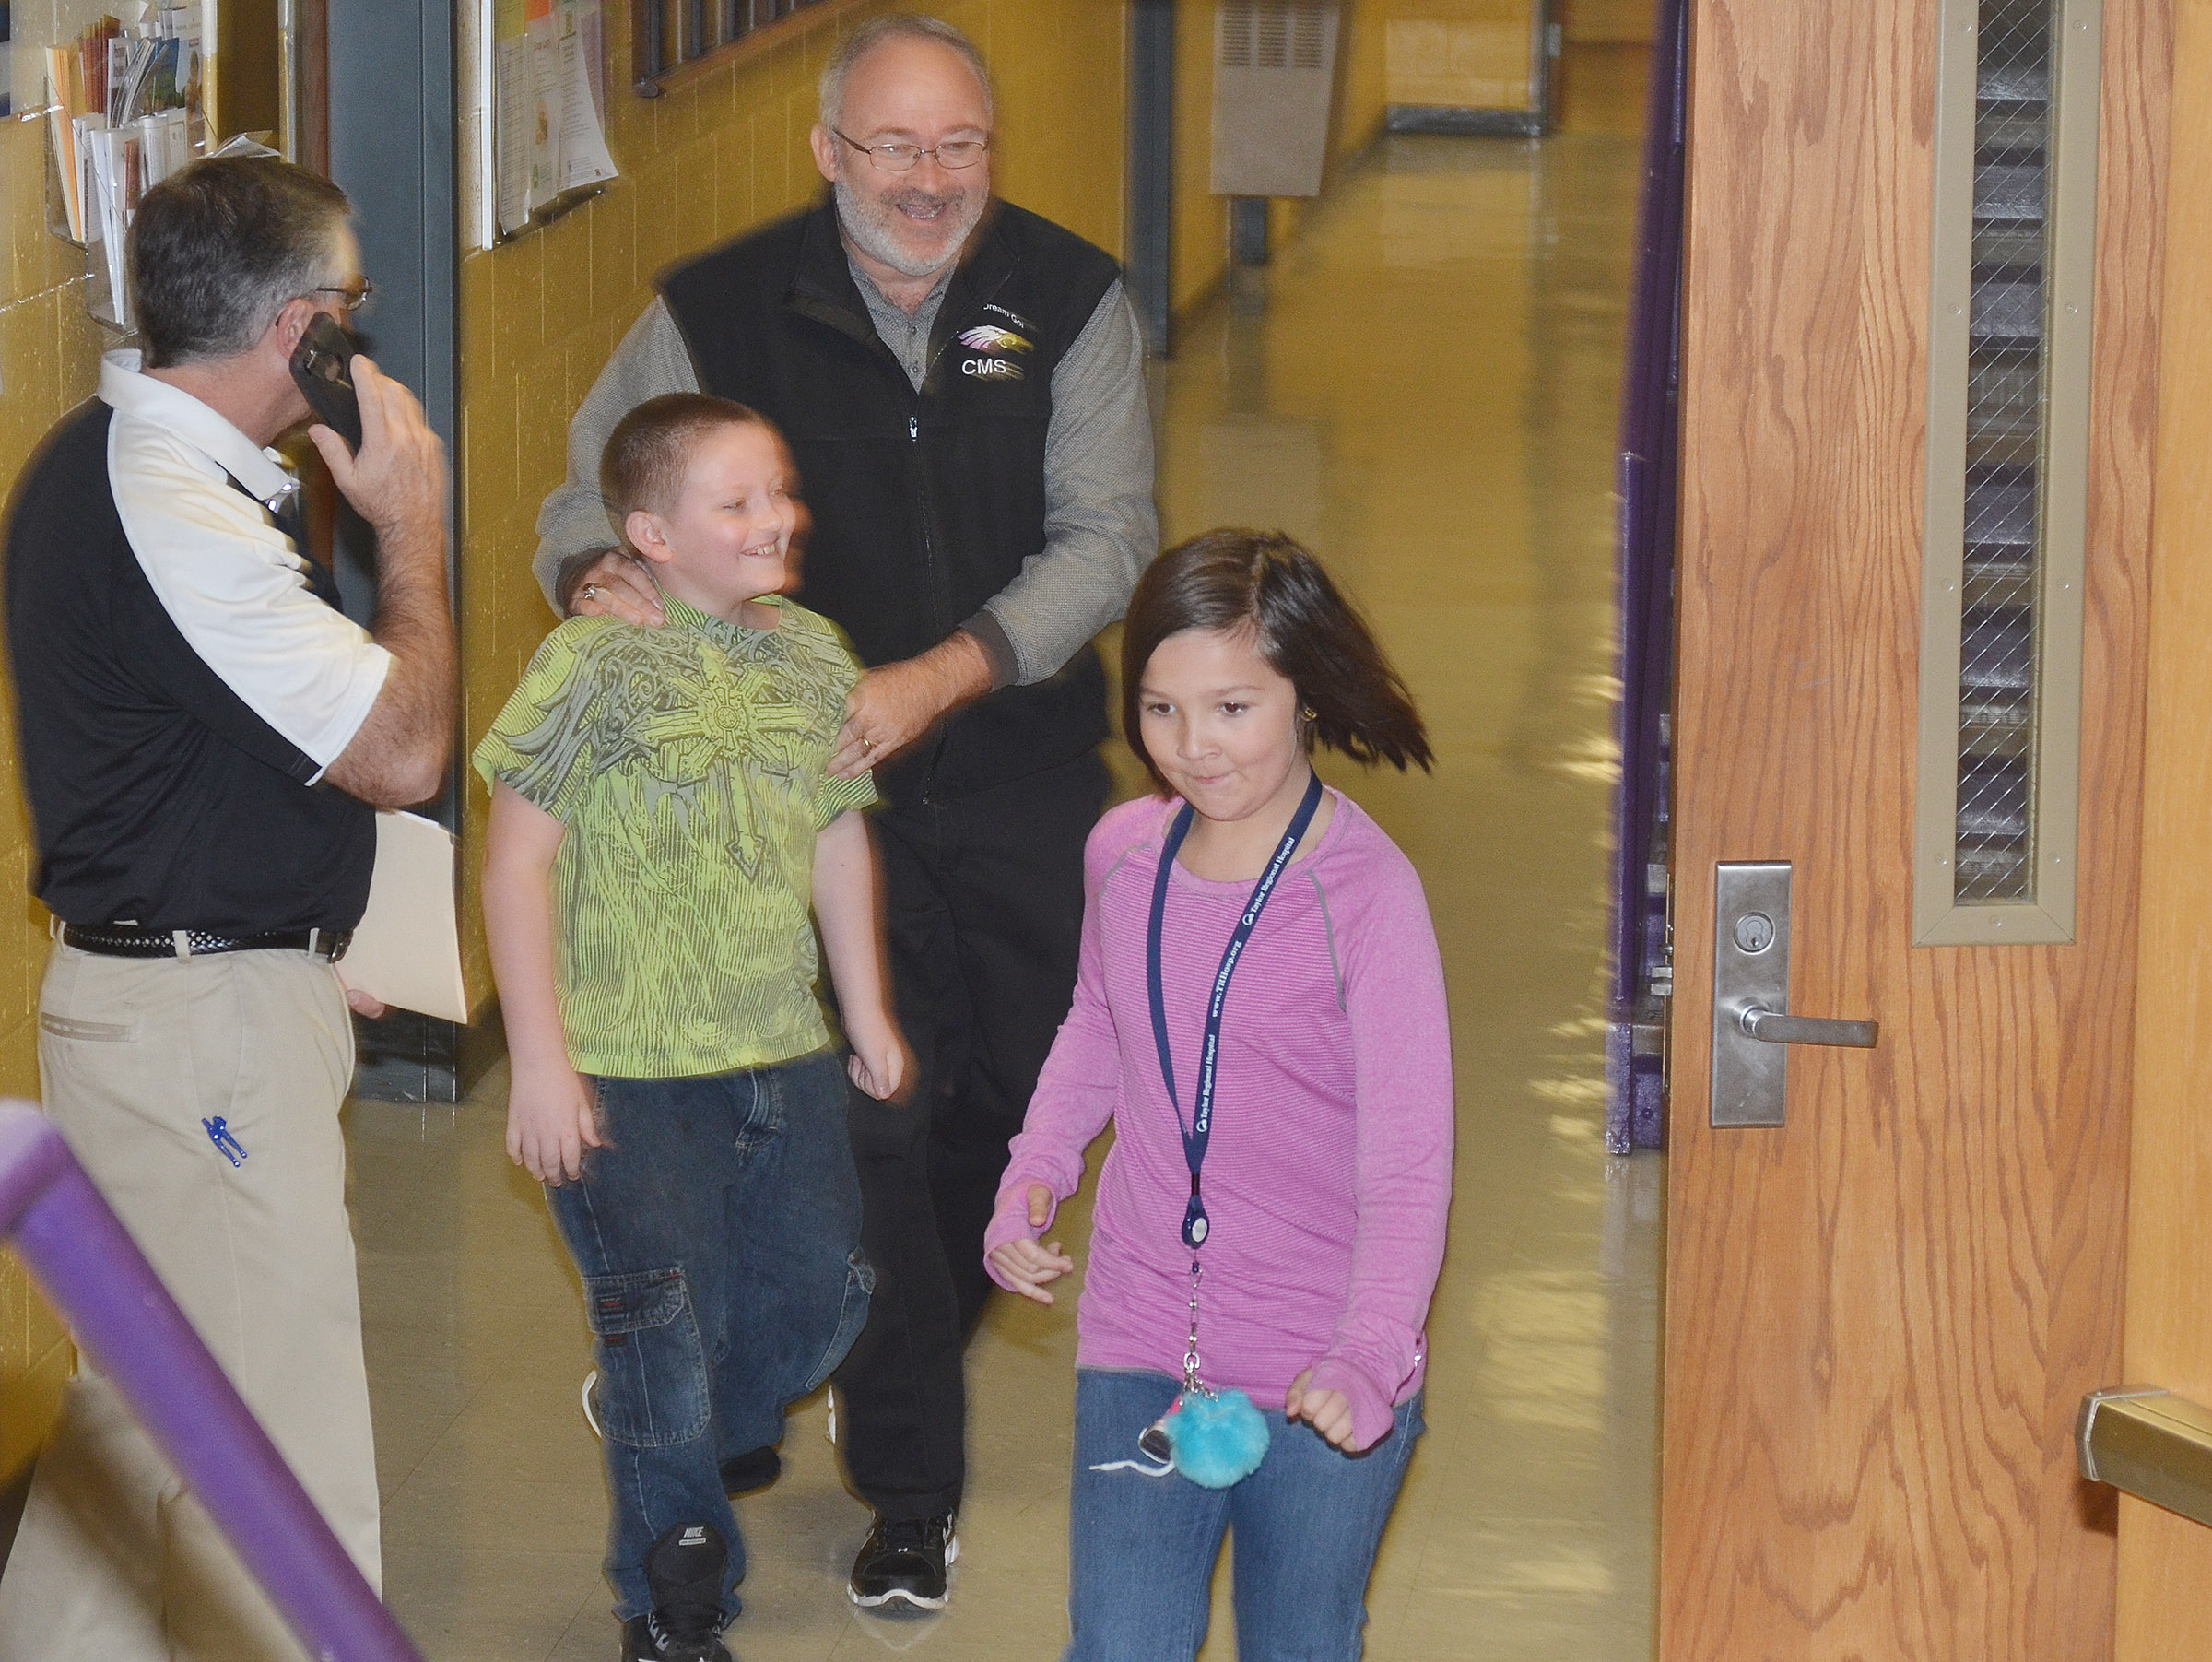 CMS Assistant Principal Tim Bailey captures fourth-graders Christopher Cox and Cassie Crick as they try to make their way to safety via the Underground Railroad in their school hallways.